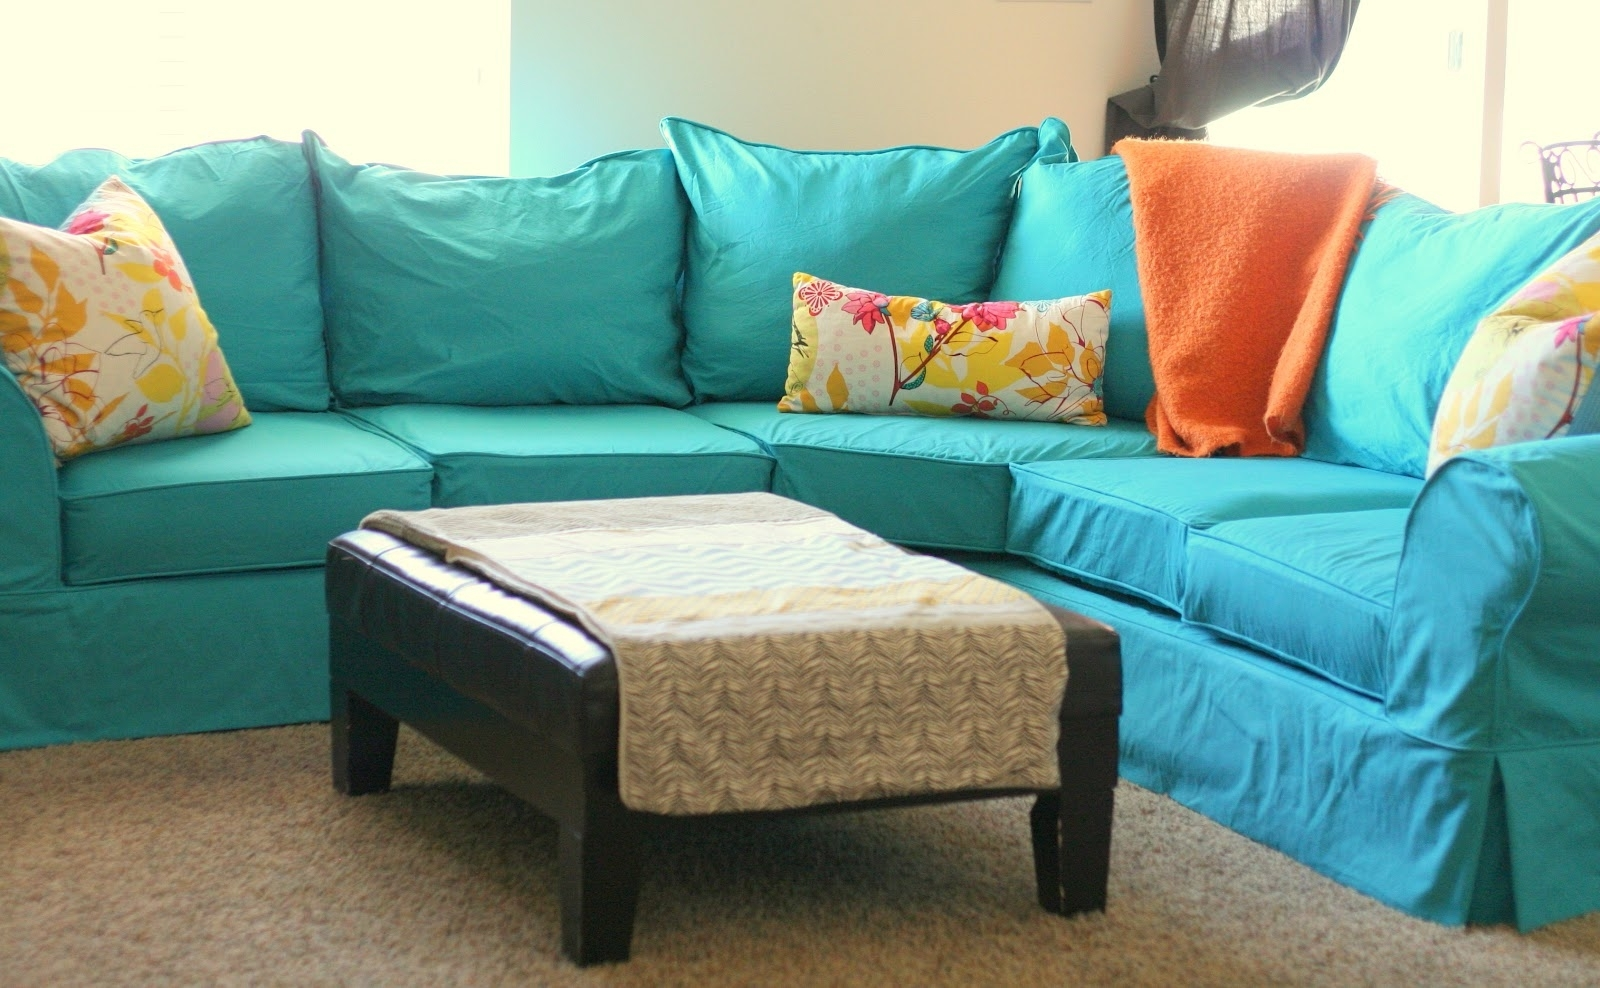 Sectional Sofas With Covers Regarding Current 2 Cushion Sofa Slipcover Slip Covers For Six Cushion Sofa (View 9 of 15)